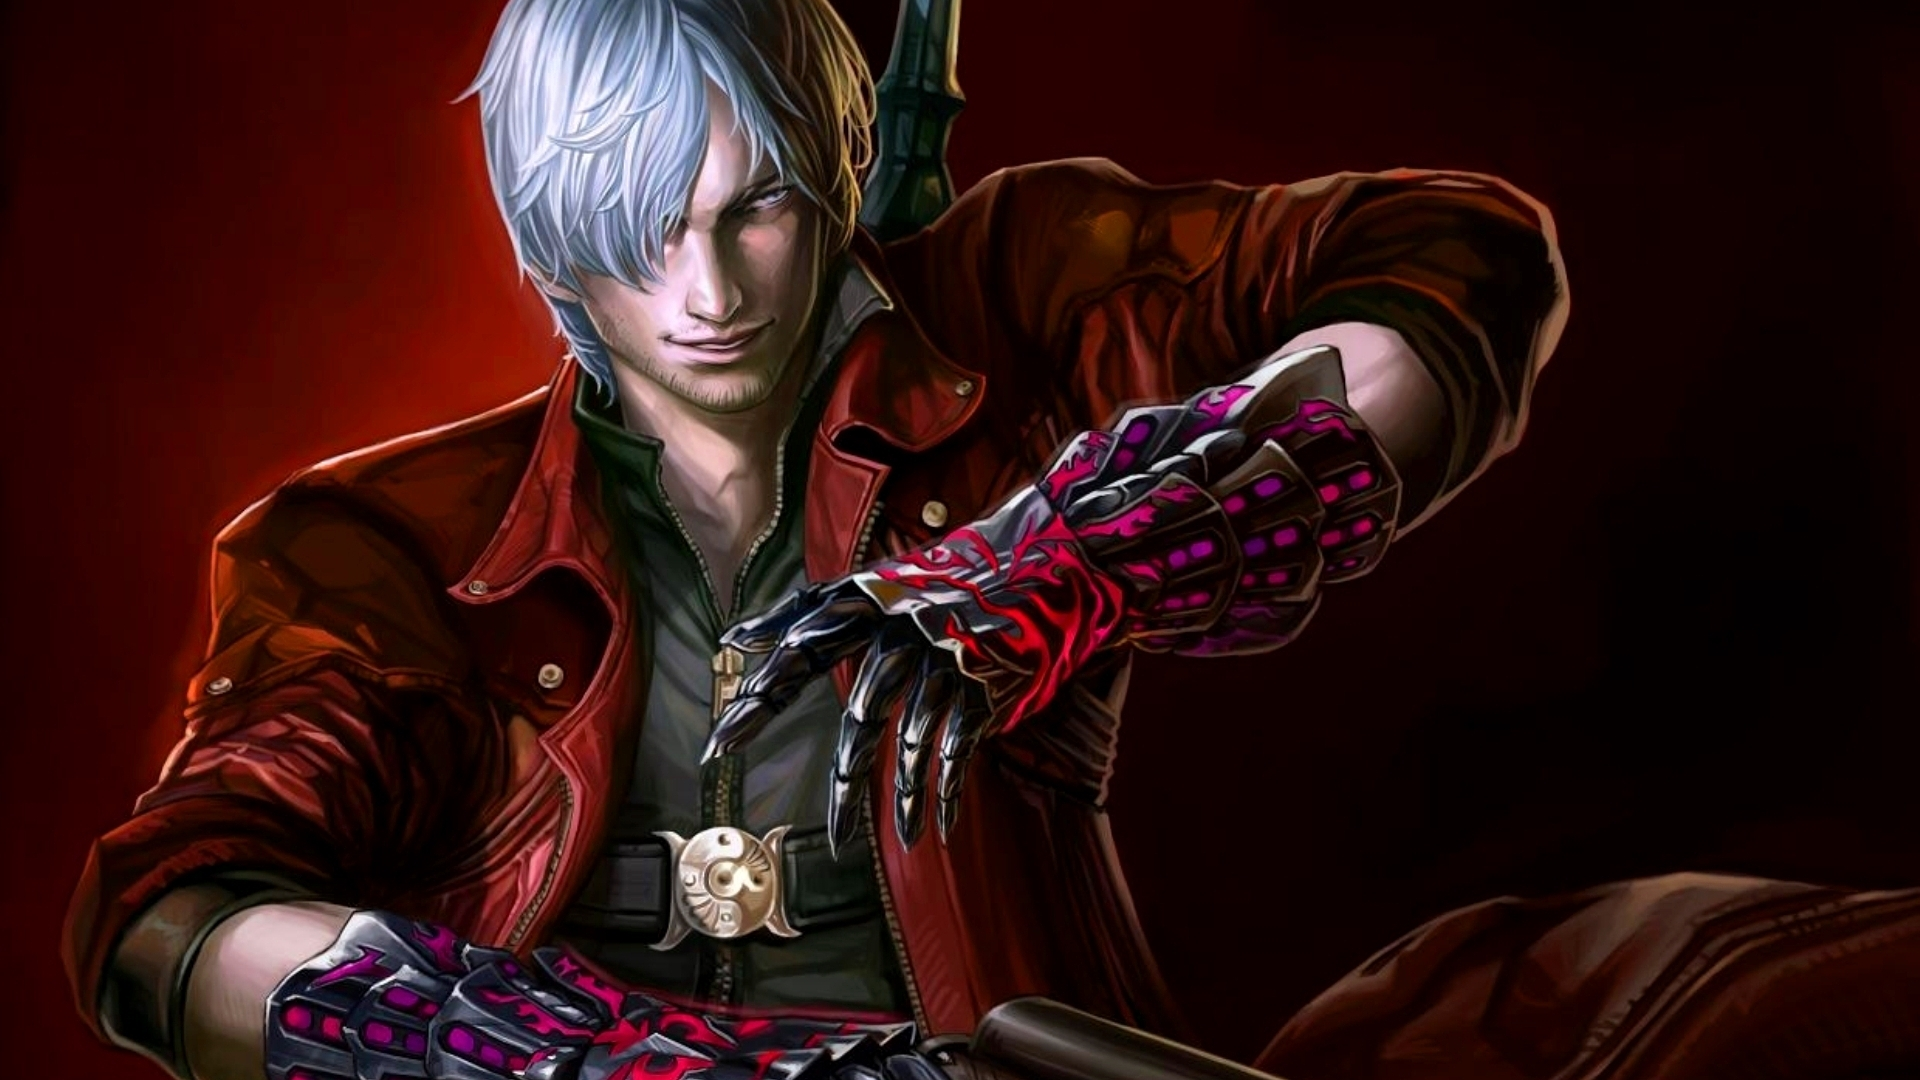 Devil may cry background a1 hd desktop wallpapers 4k hd devil may cry background a1 voltagebd Choice Image